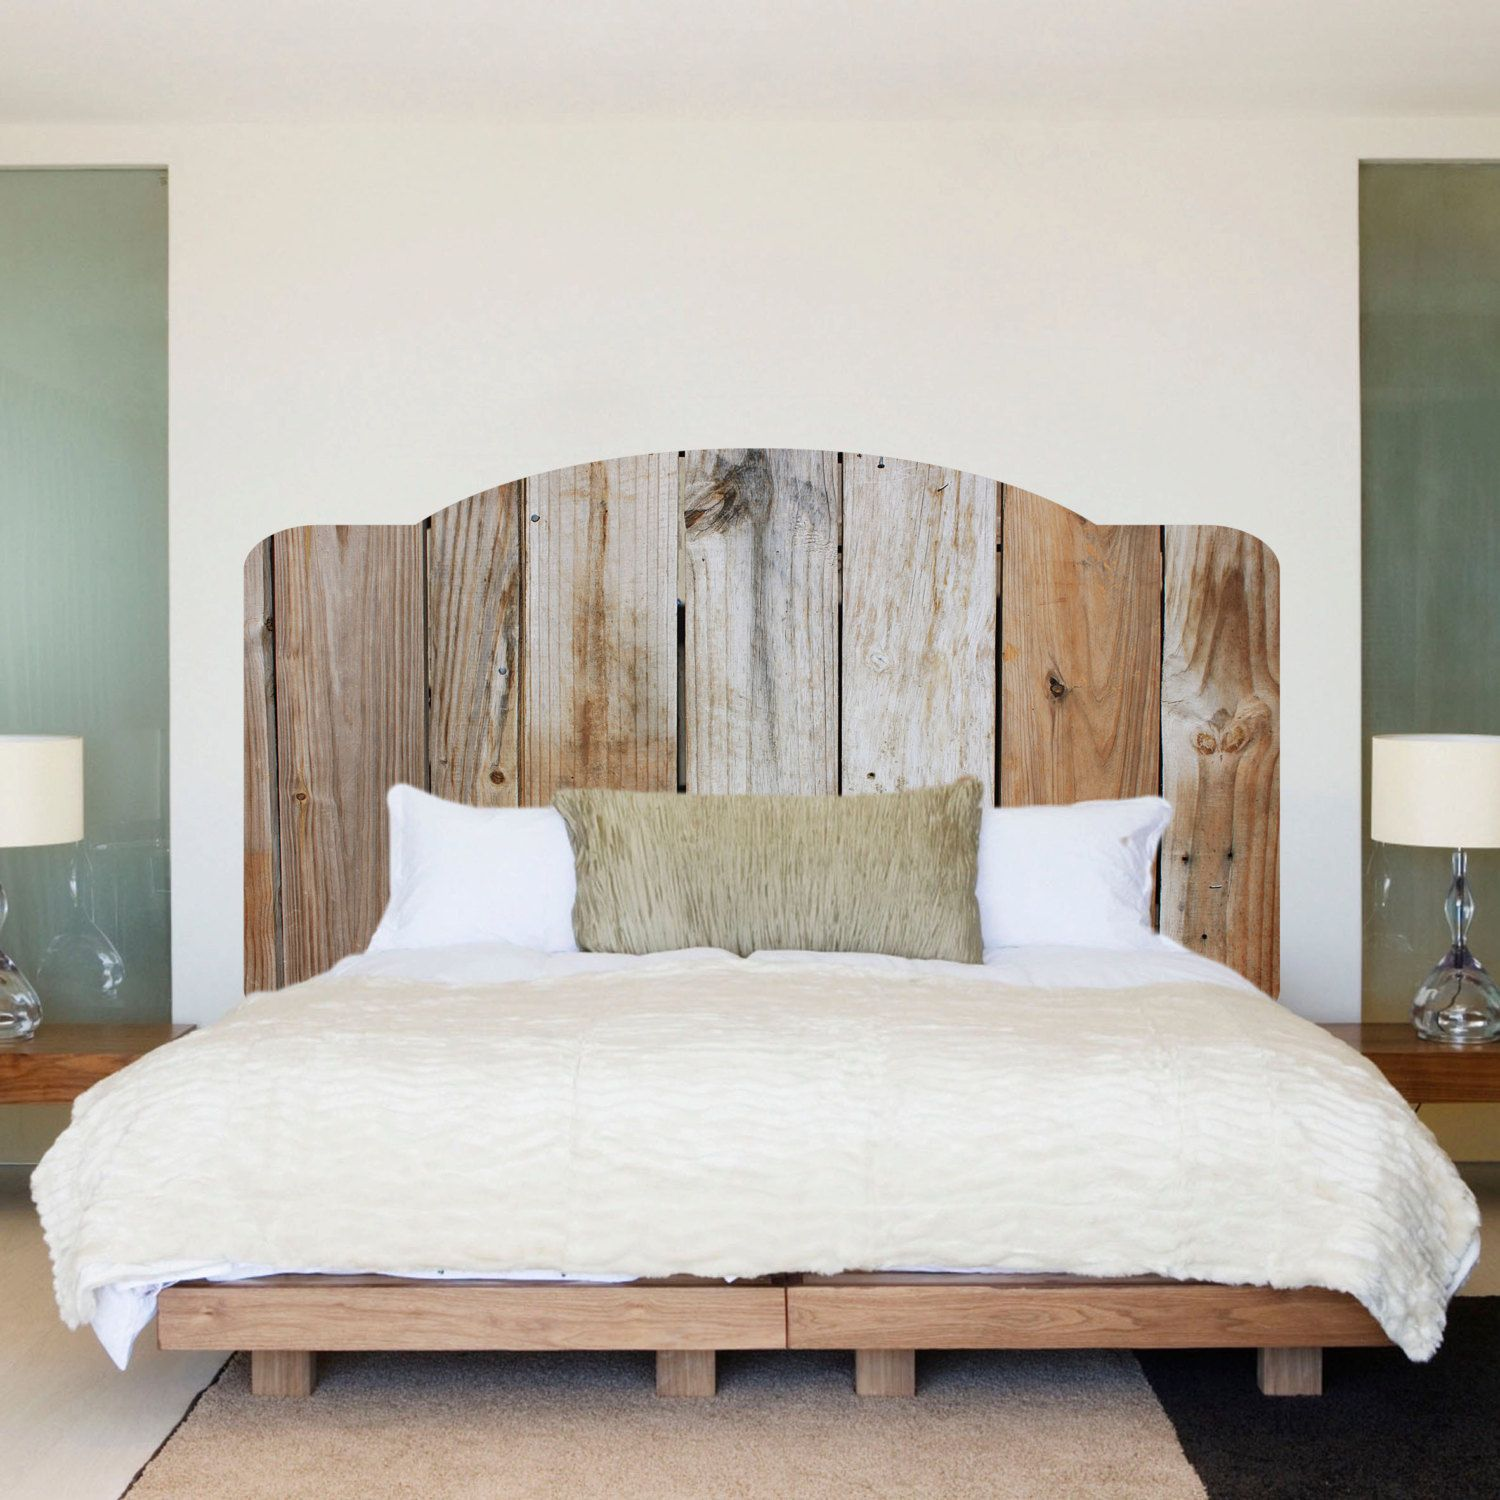 Rustic Headboards rustic wood headboard wall decal, rustic headboard wall mural